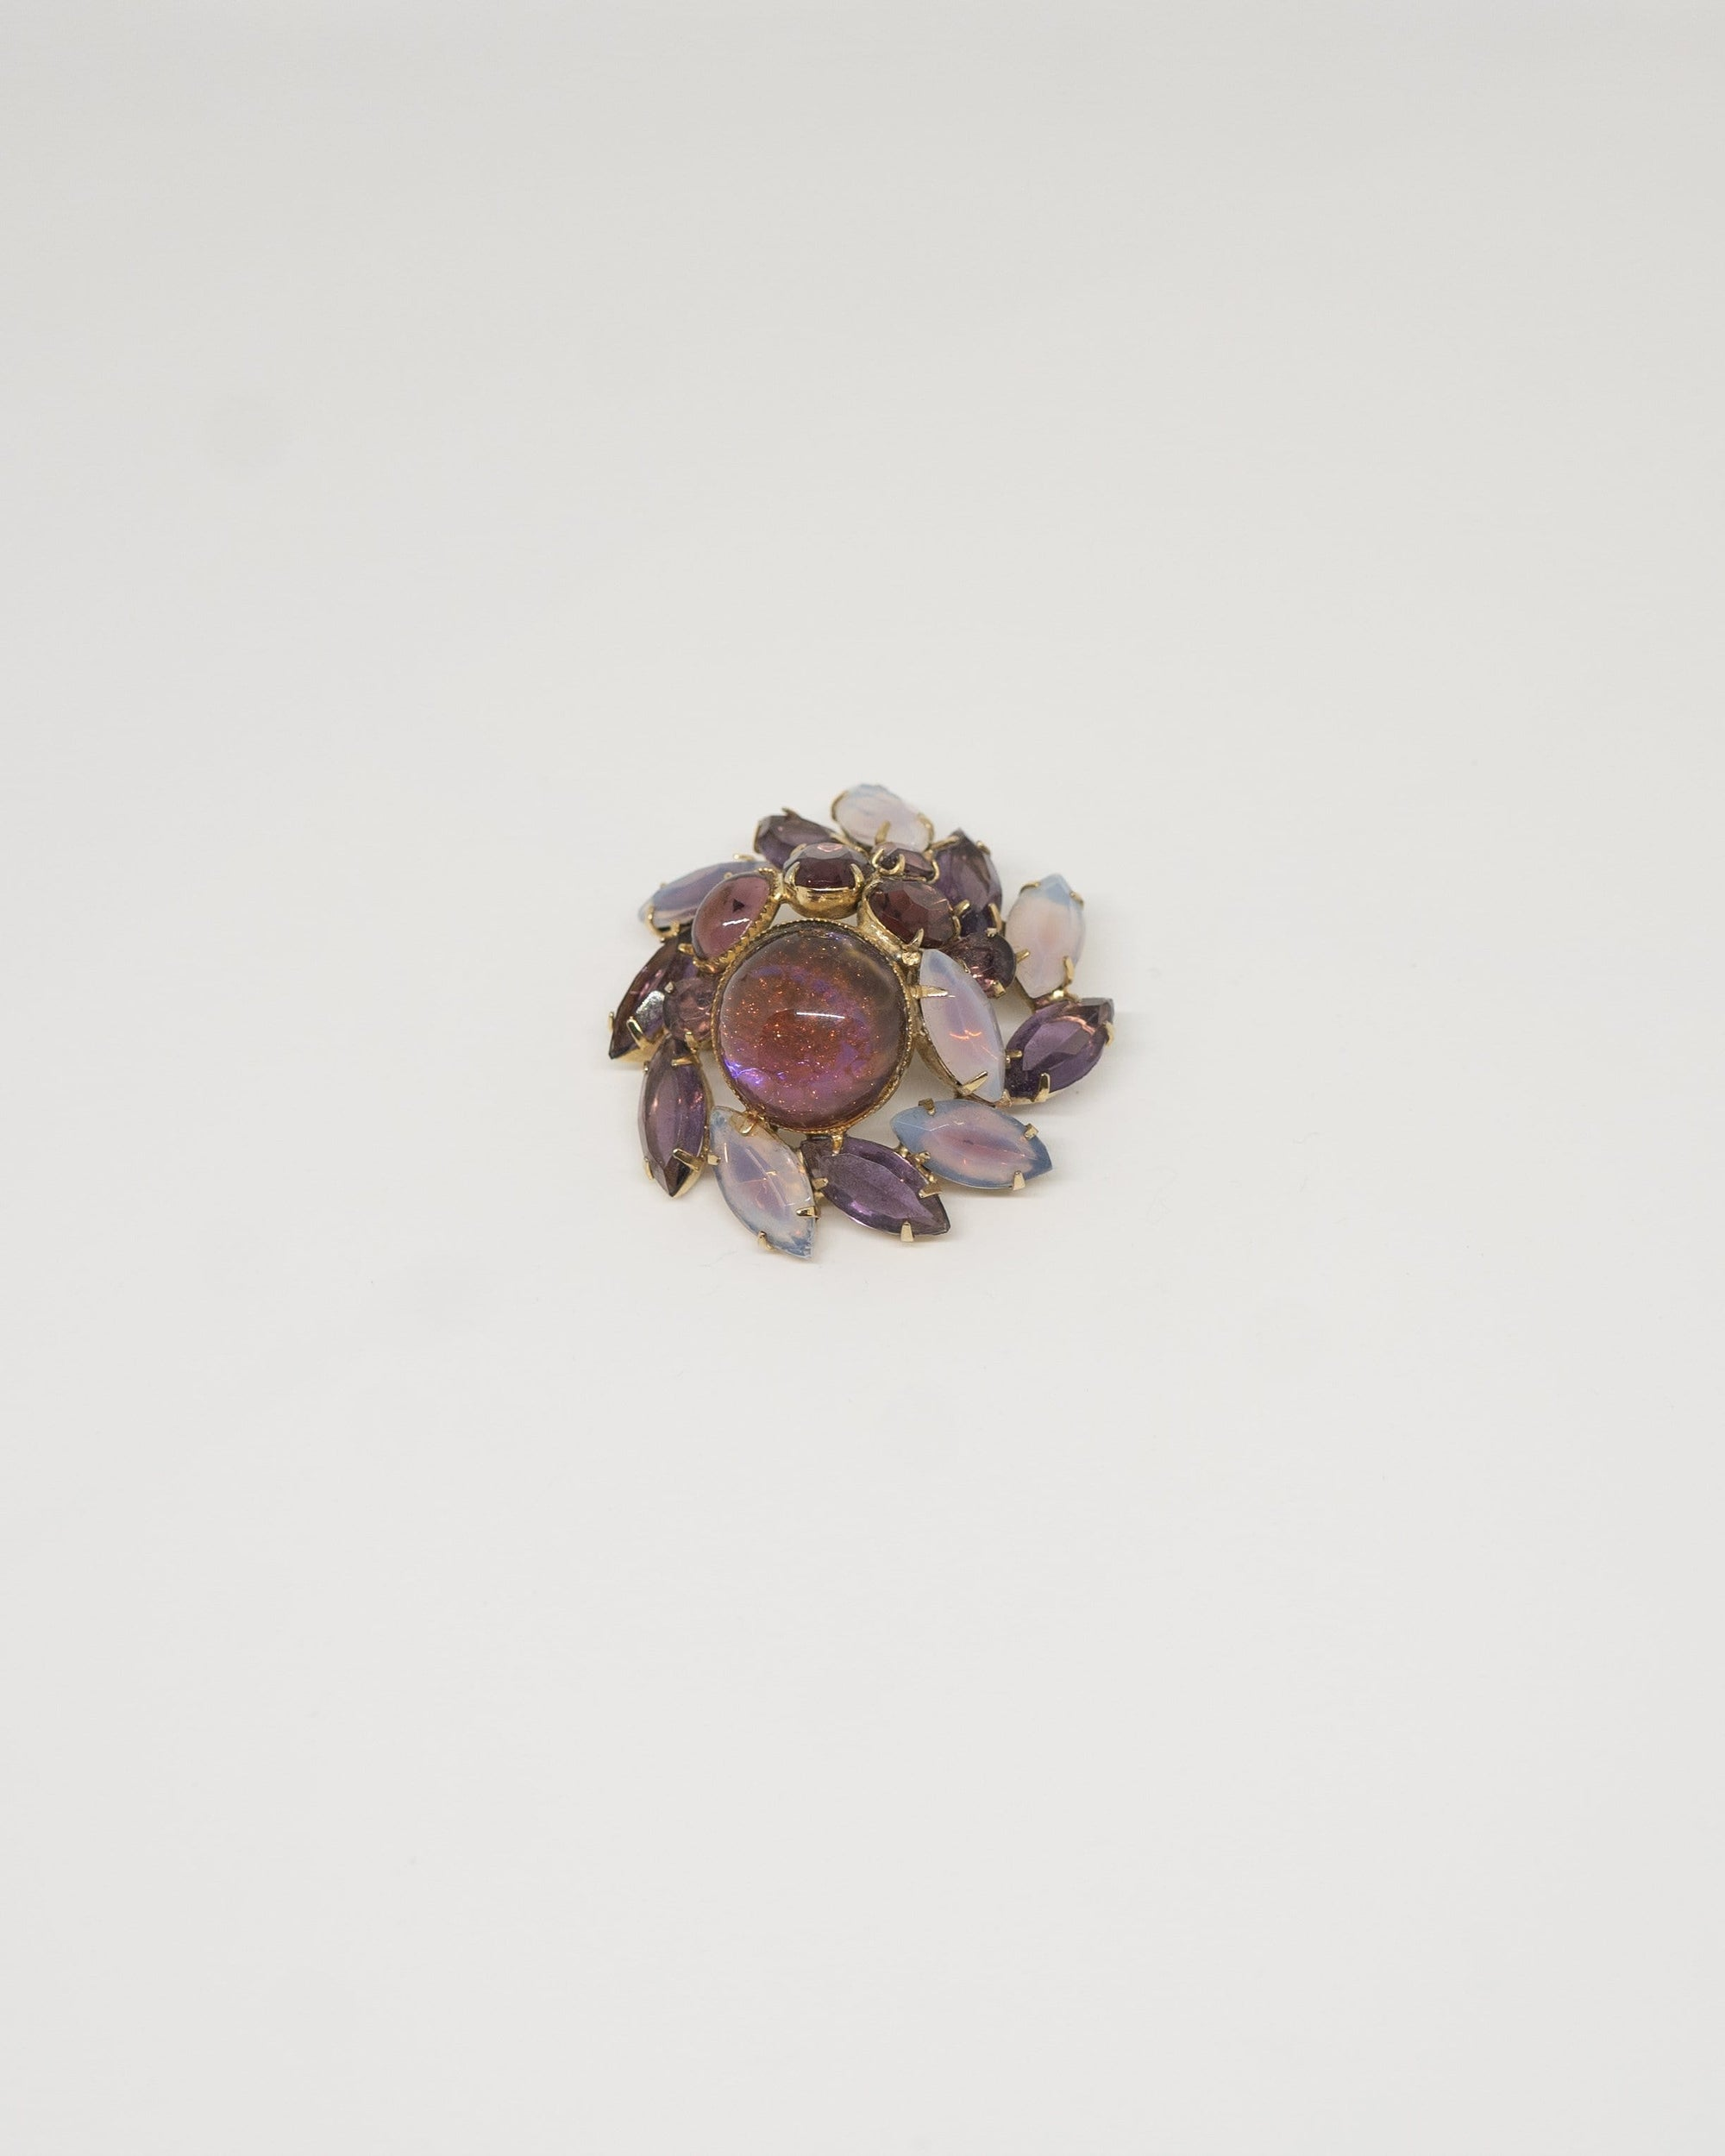 Swirly Vintage Broach